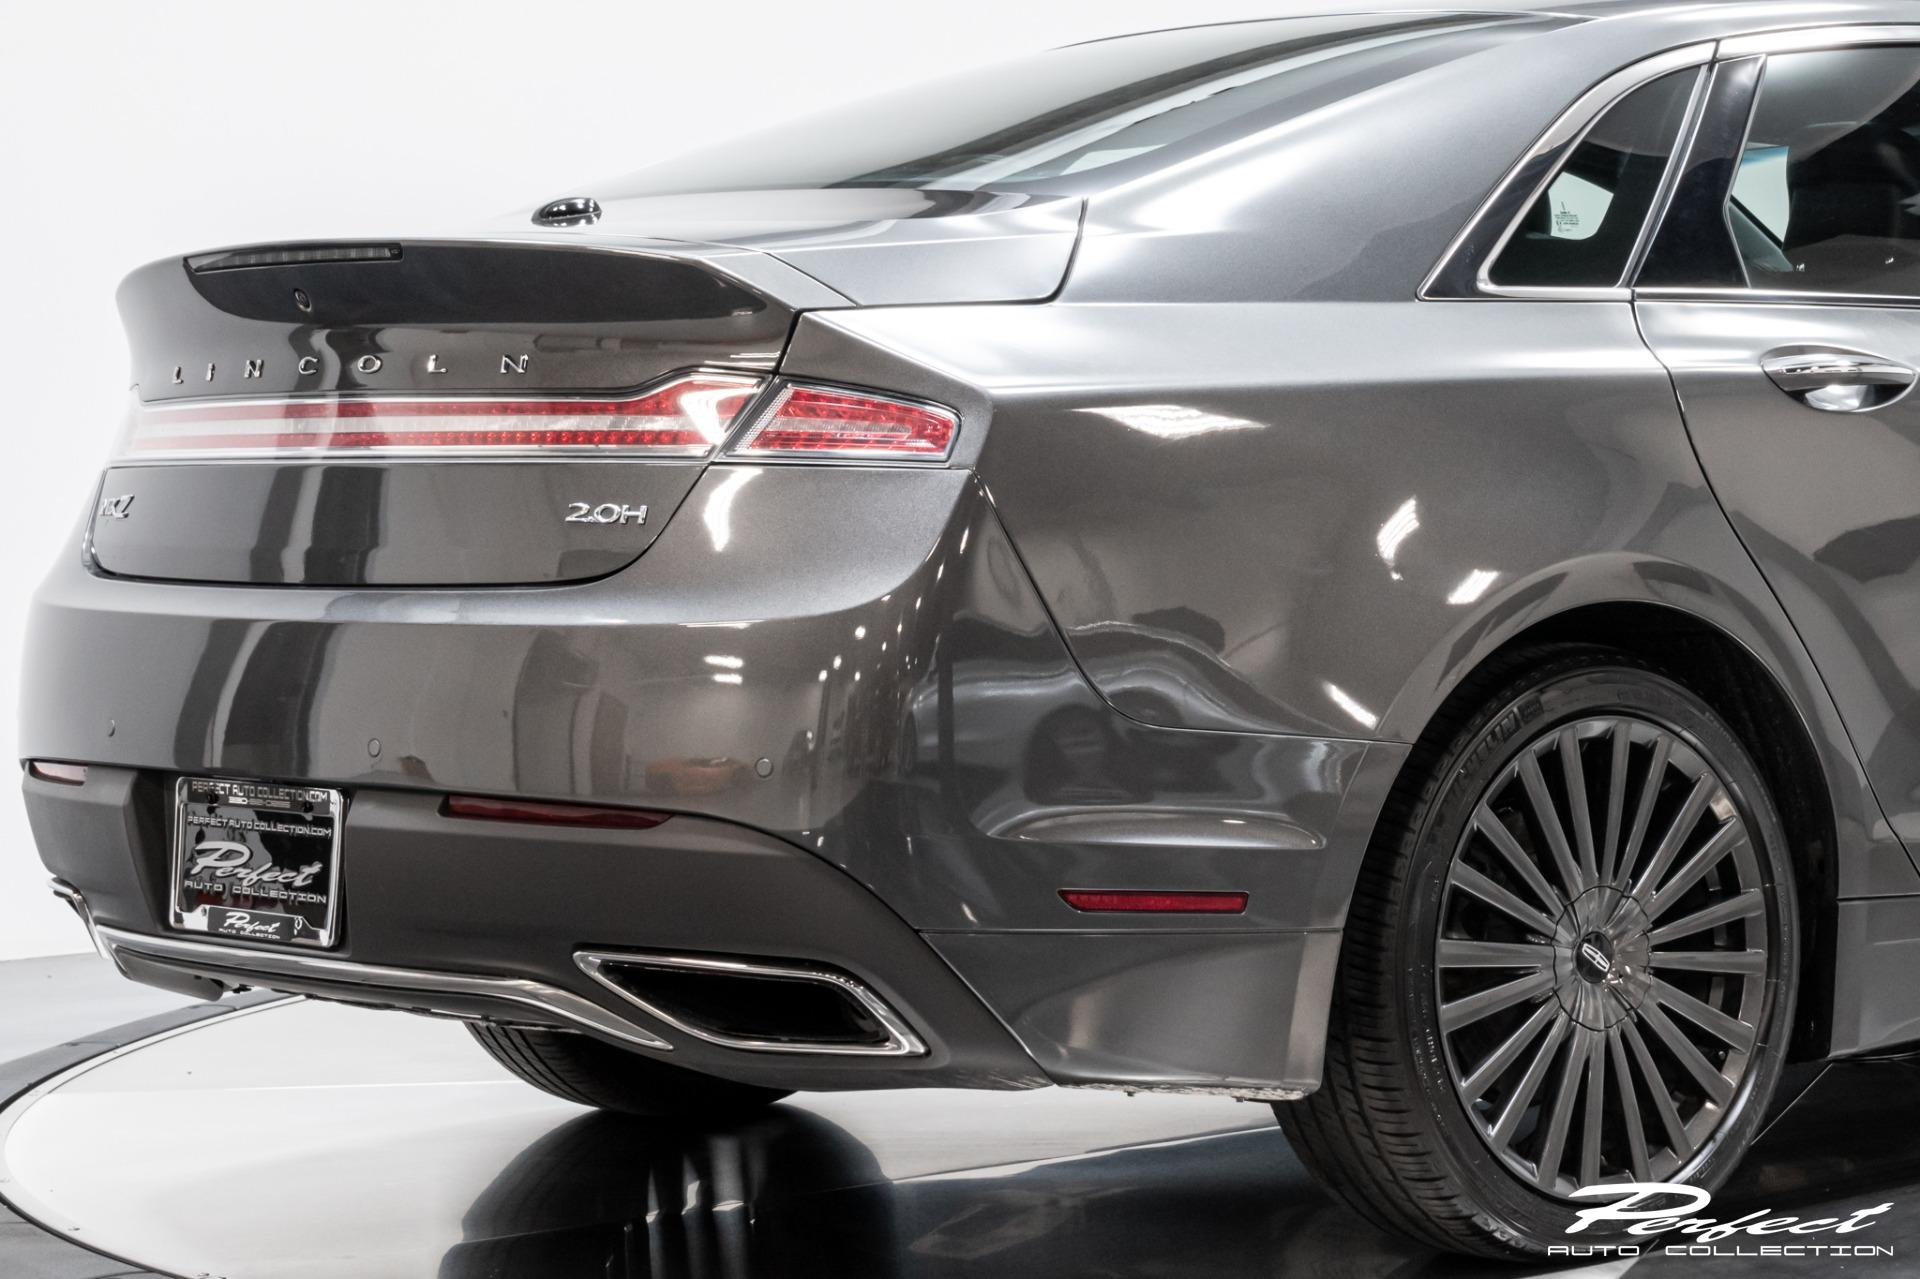 Used 2018 Lincoln MKZ Hybrid Reserve for sale Sold at Perfect Auto Collection in Akron OH 44310 4